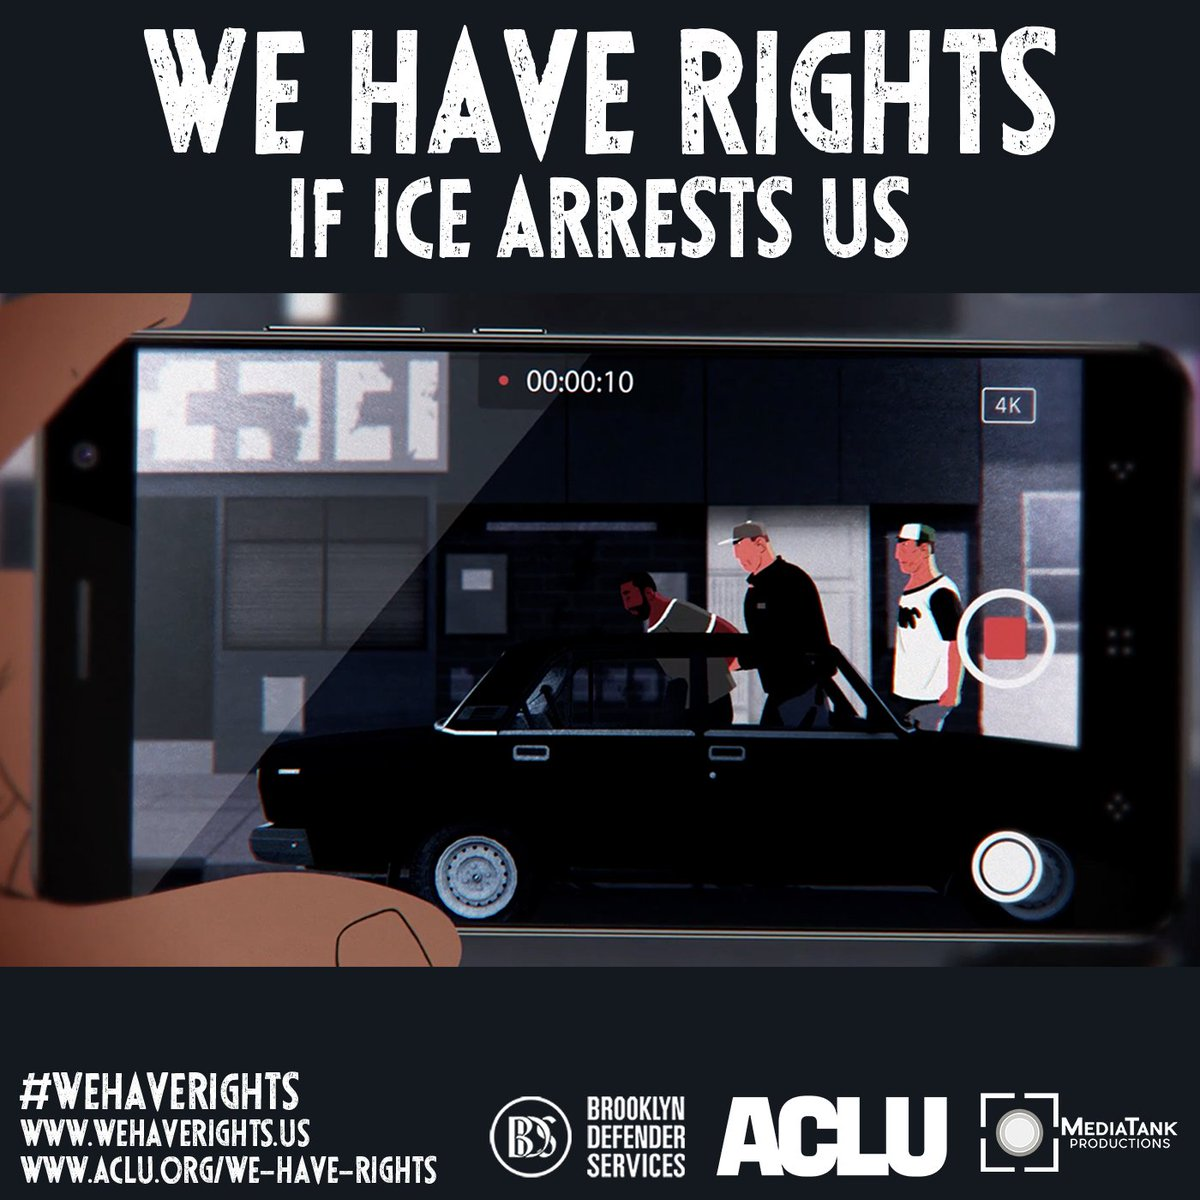 If you witness #ICE making an arrest, it is your right to document what you see by taking notes or videotaping. Do not interrupt the arrest, but you have the right to ask for identification and badge numbers. Learn more at https://t.co/GnWtGpJ6K7   #WeHaveRights